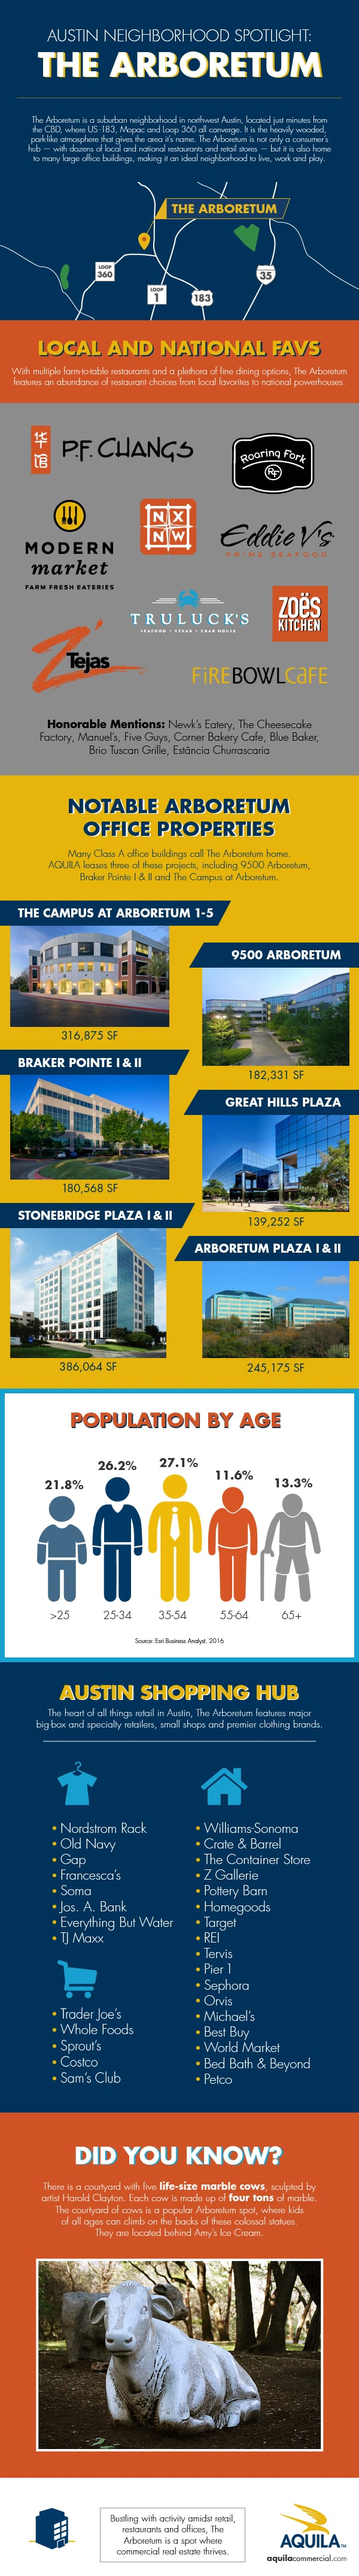 The Arboretum Infographic: Office Properties, Demographics and What to do